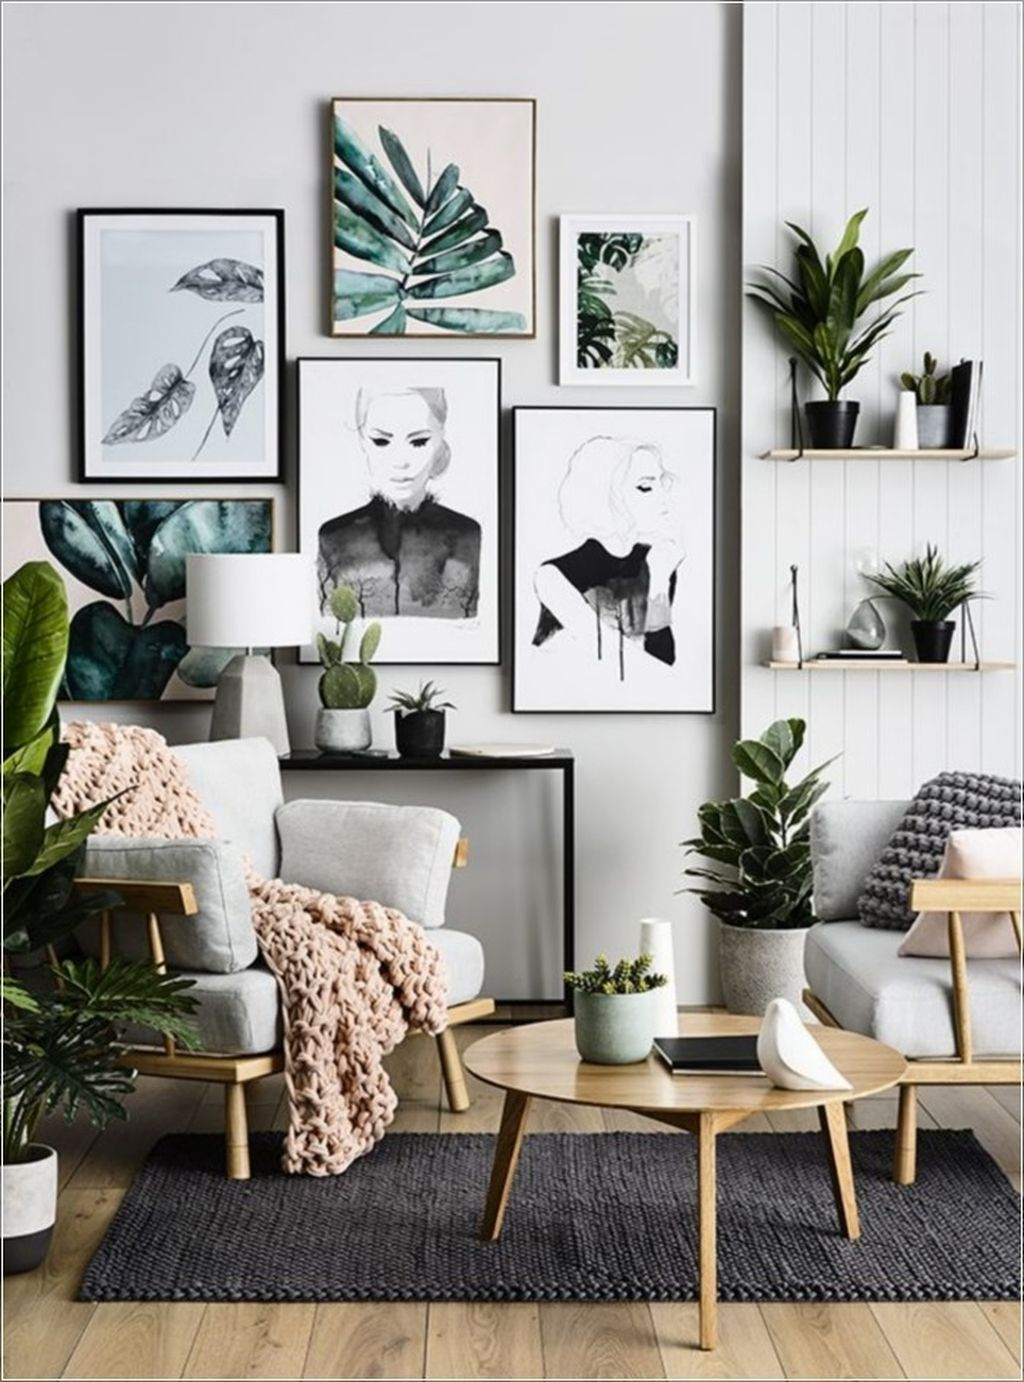 Inspiring And Affordable Decoration Ideas For Small Apartment 62